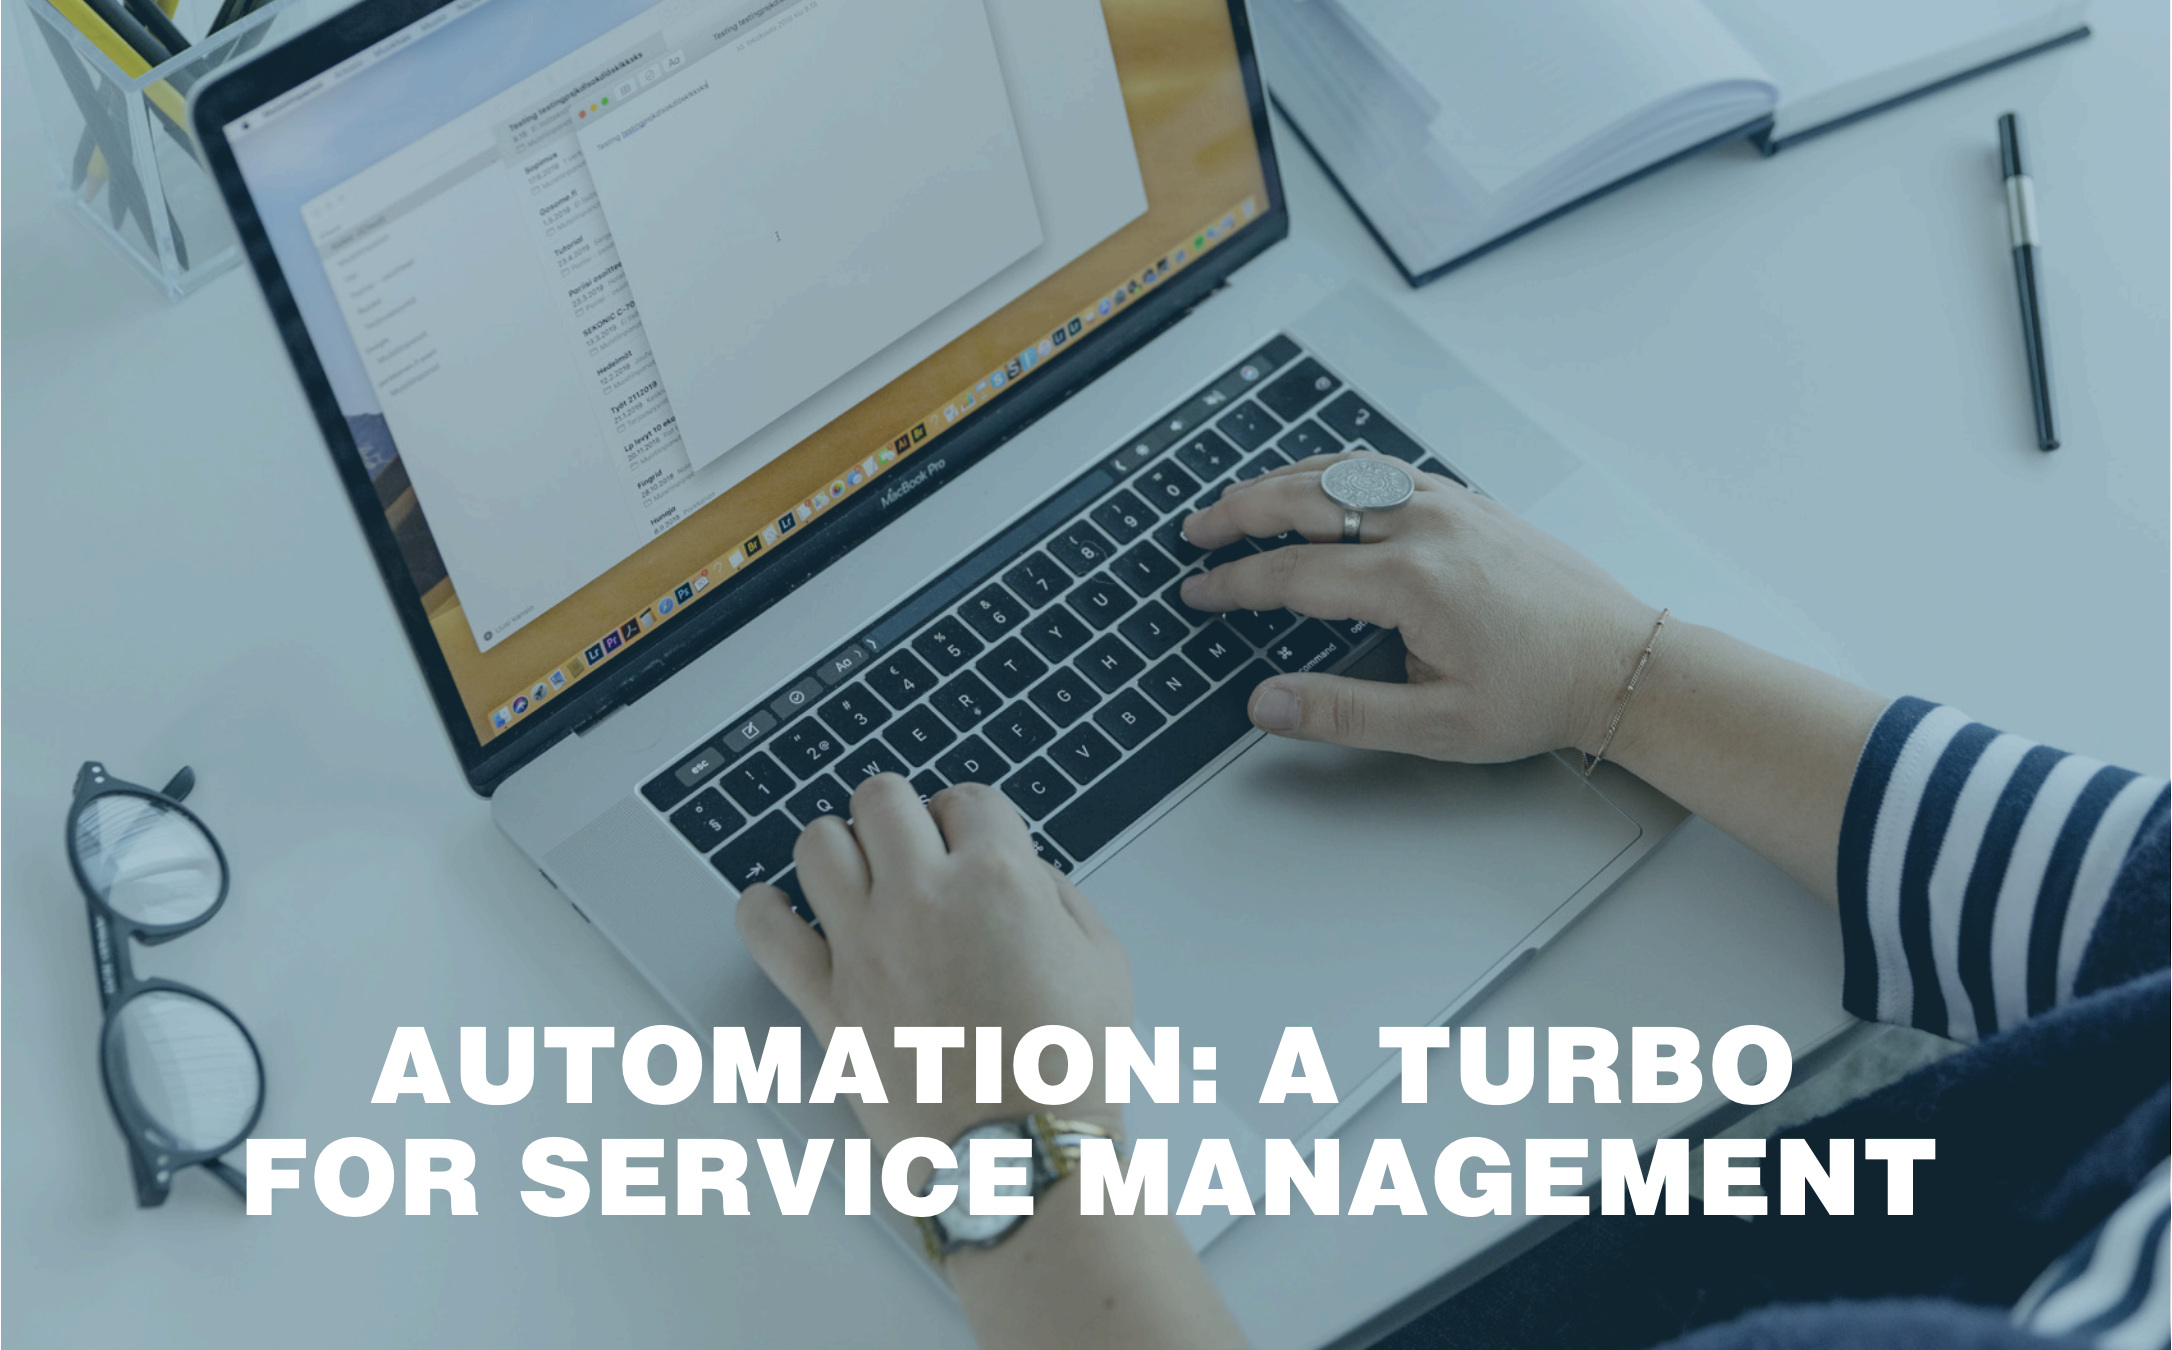 Automation - a Turbo for Service Management